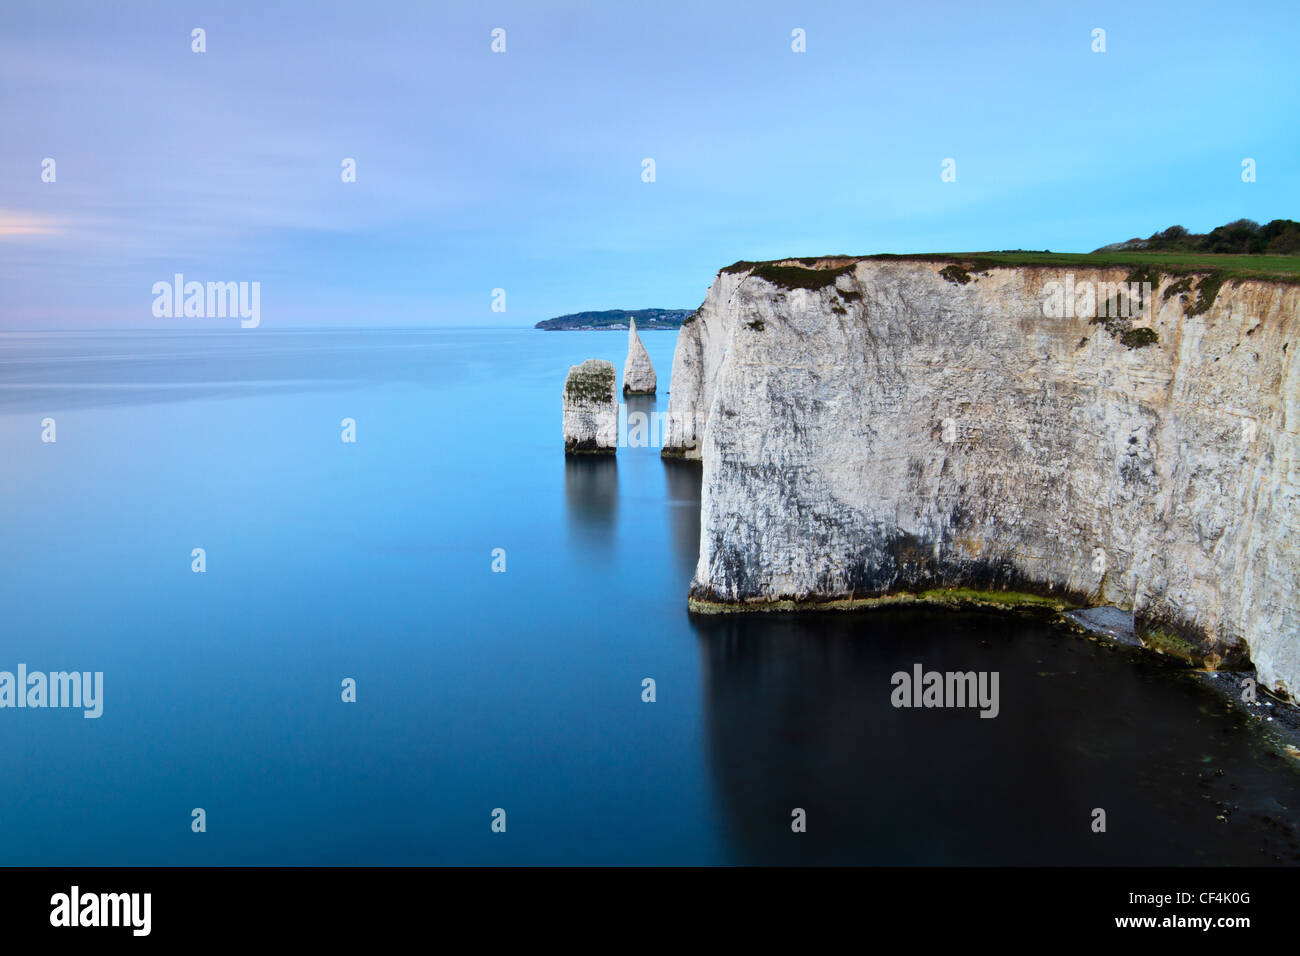 The Pinnacles, Handfast Point, Swanage, at sunrise. - Stock Image